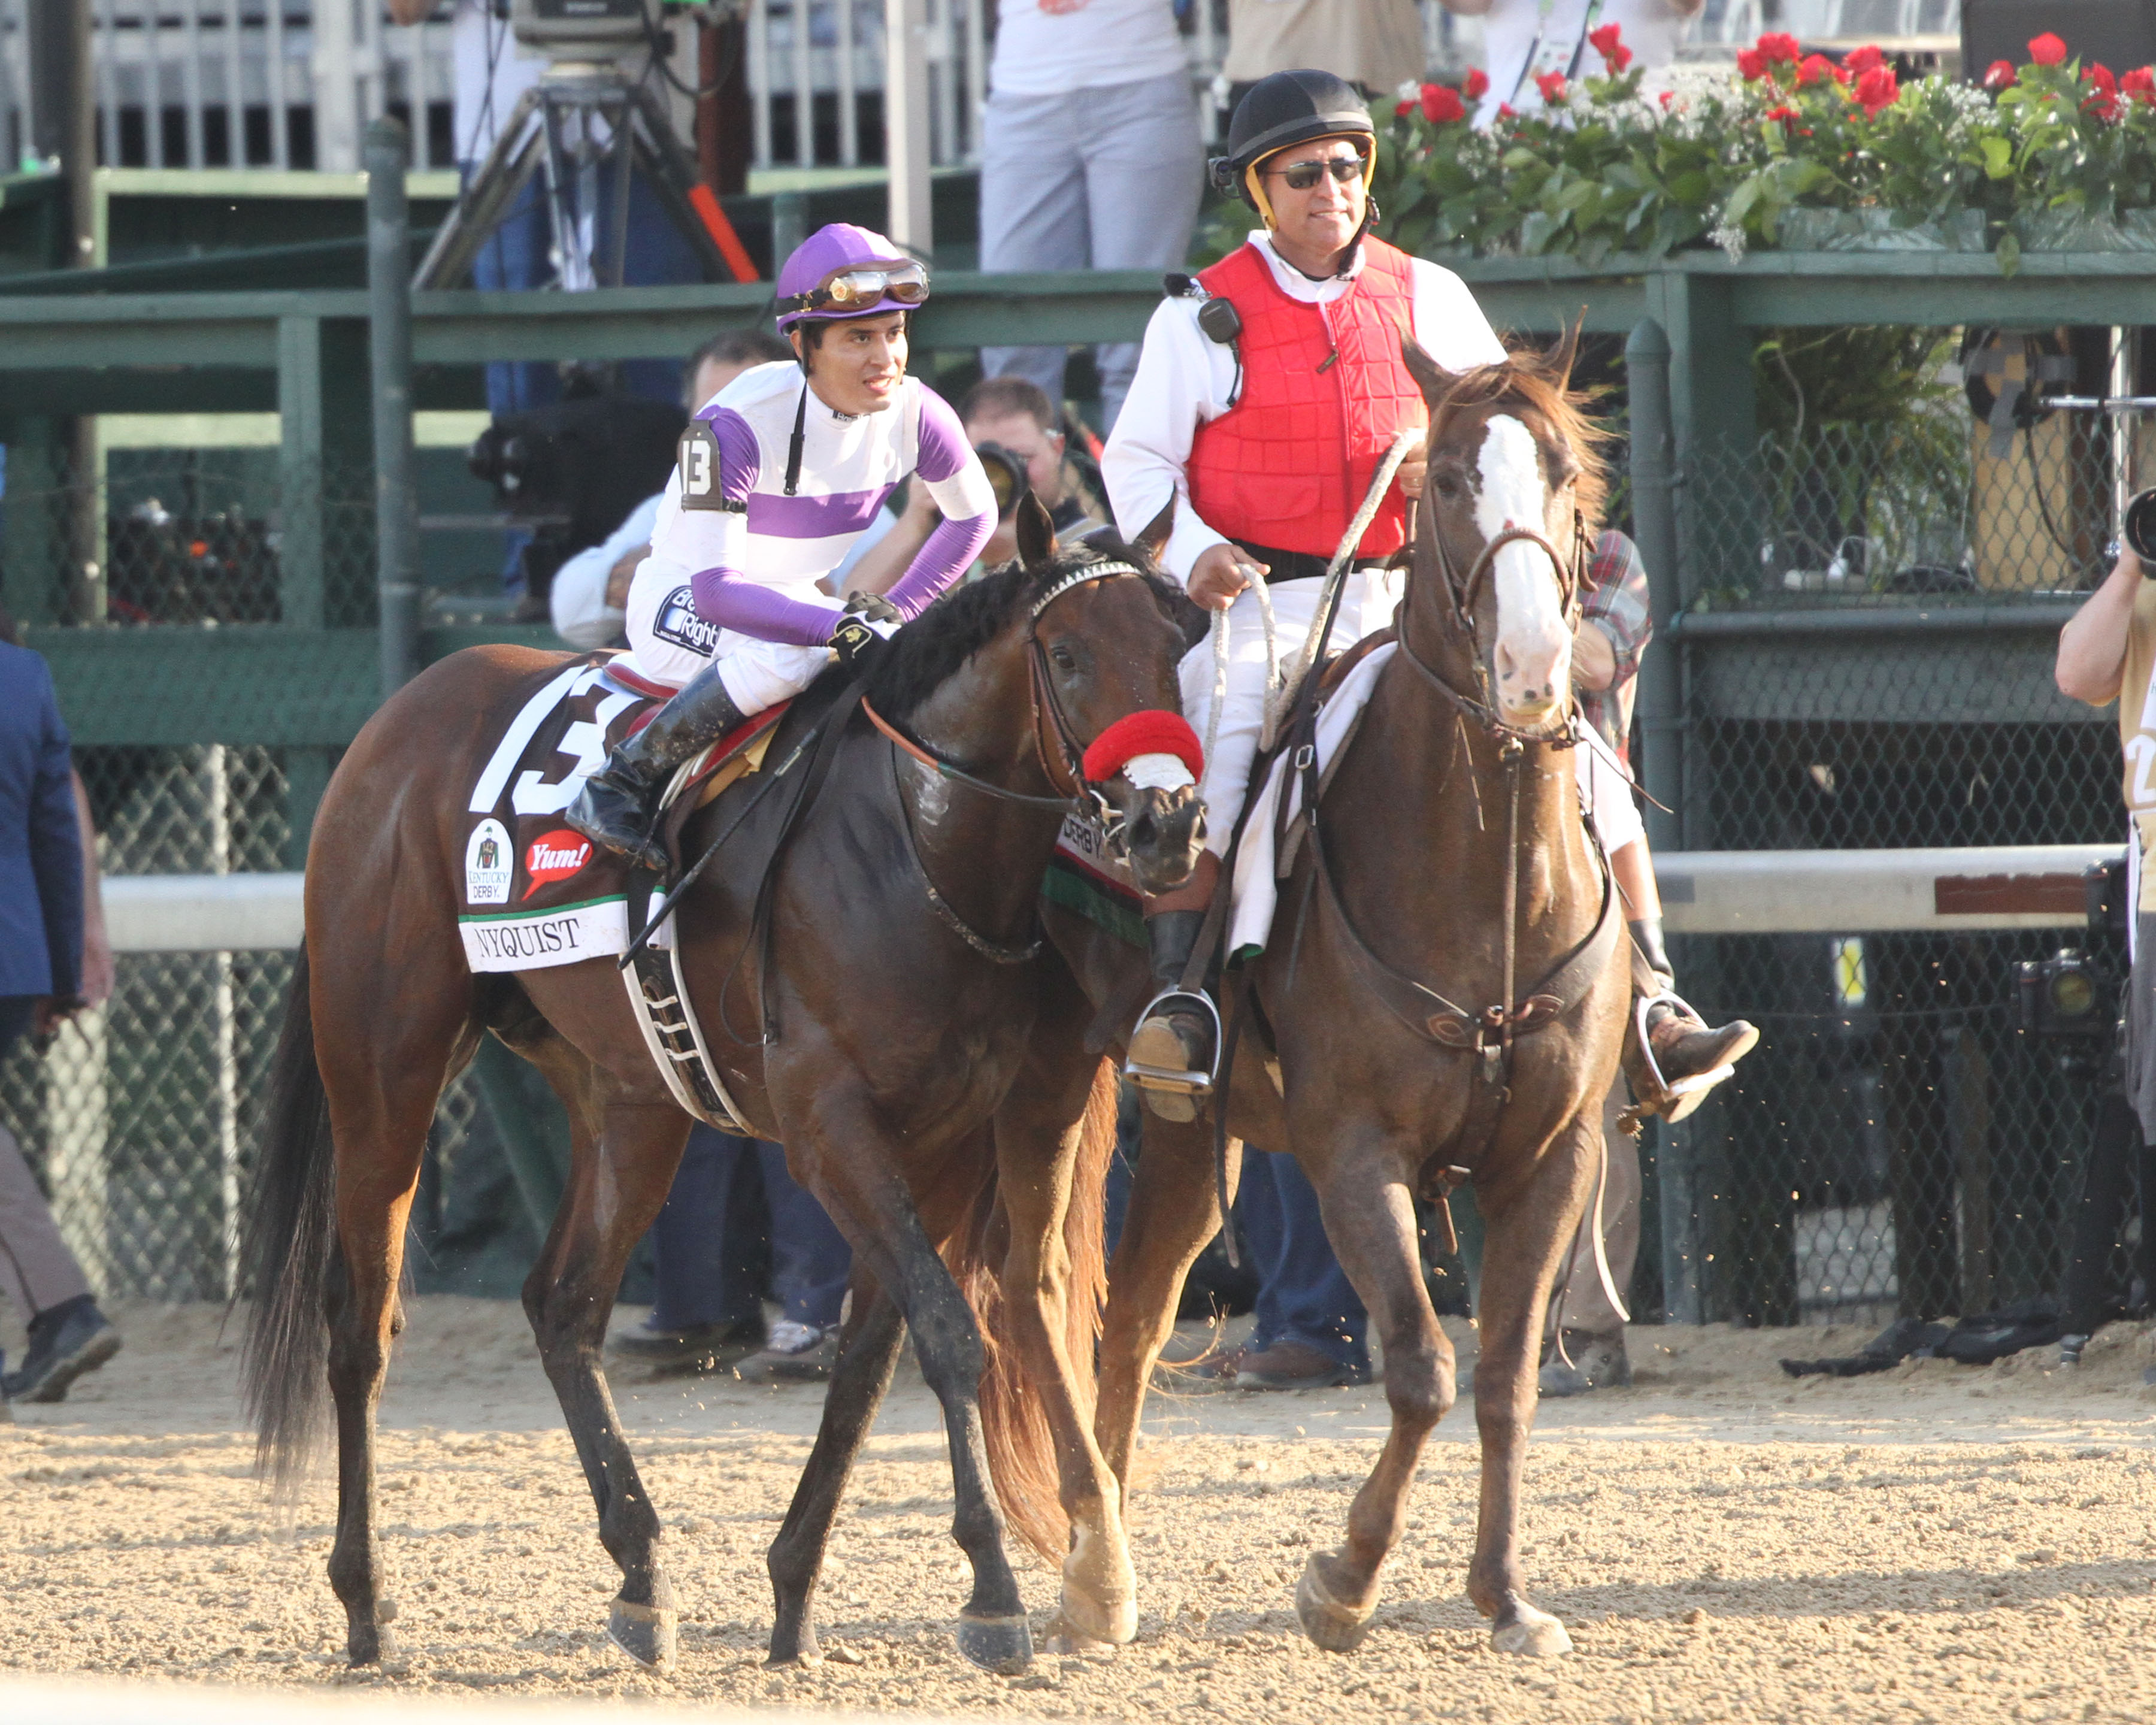 Gutierrez was all smiles after winning his 2nd Kentucky Derby with Nyquist, who he has ridden in all 8 career starts. ©Coady Photography